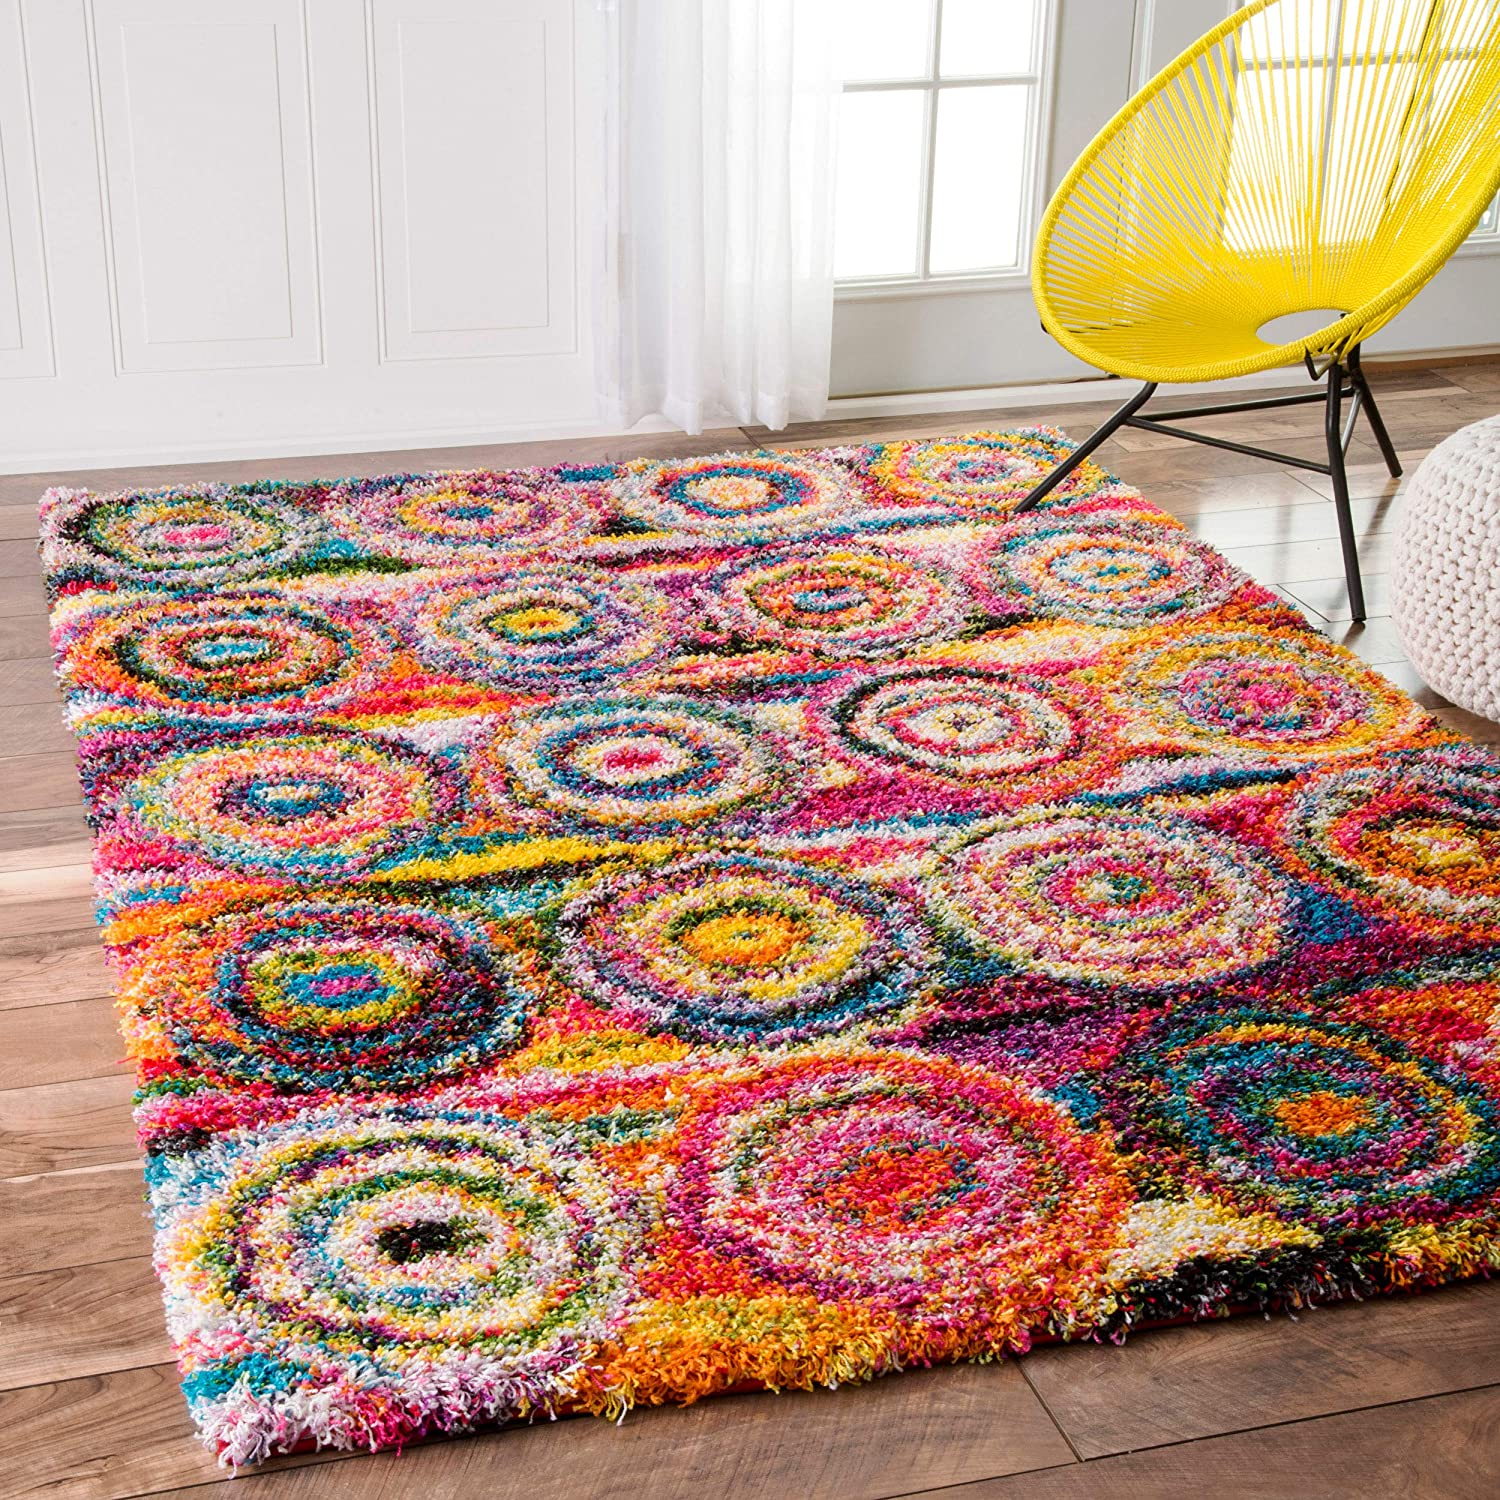 Inventory cleanup selling sale nuLOOM Kindra Circles Shag Area Free shipping anywhere in the nation Rug x 9' 12' Multi 2